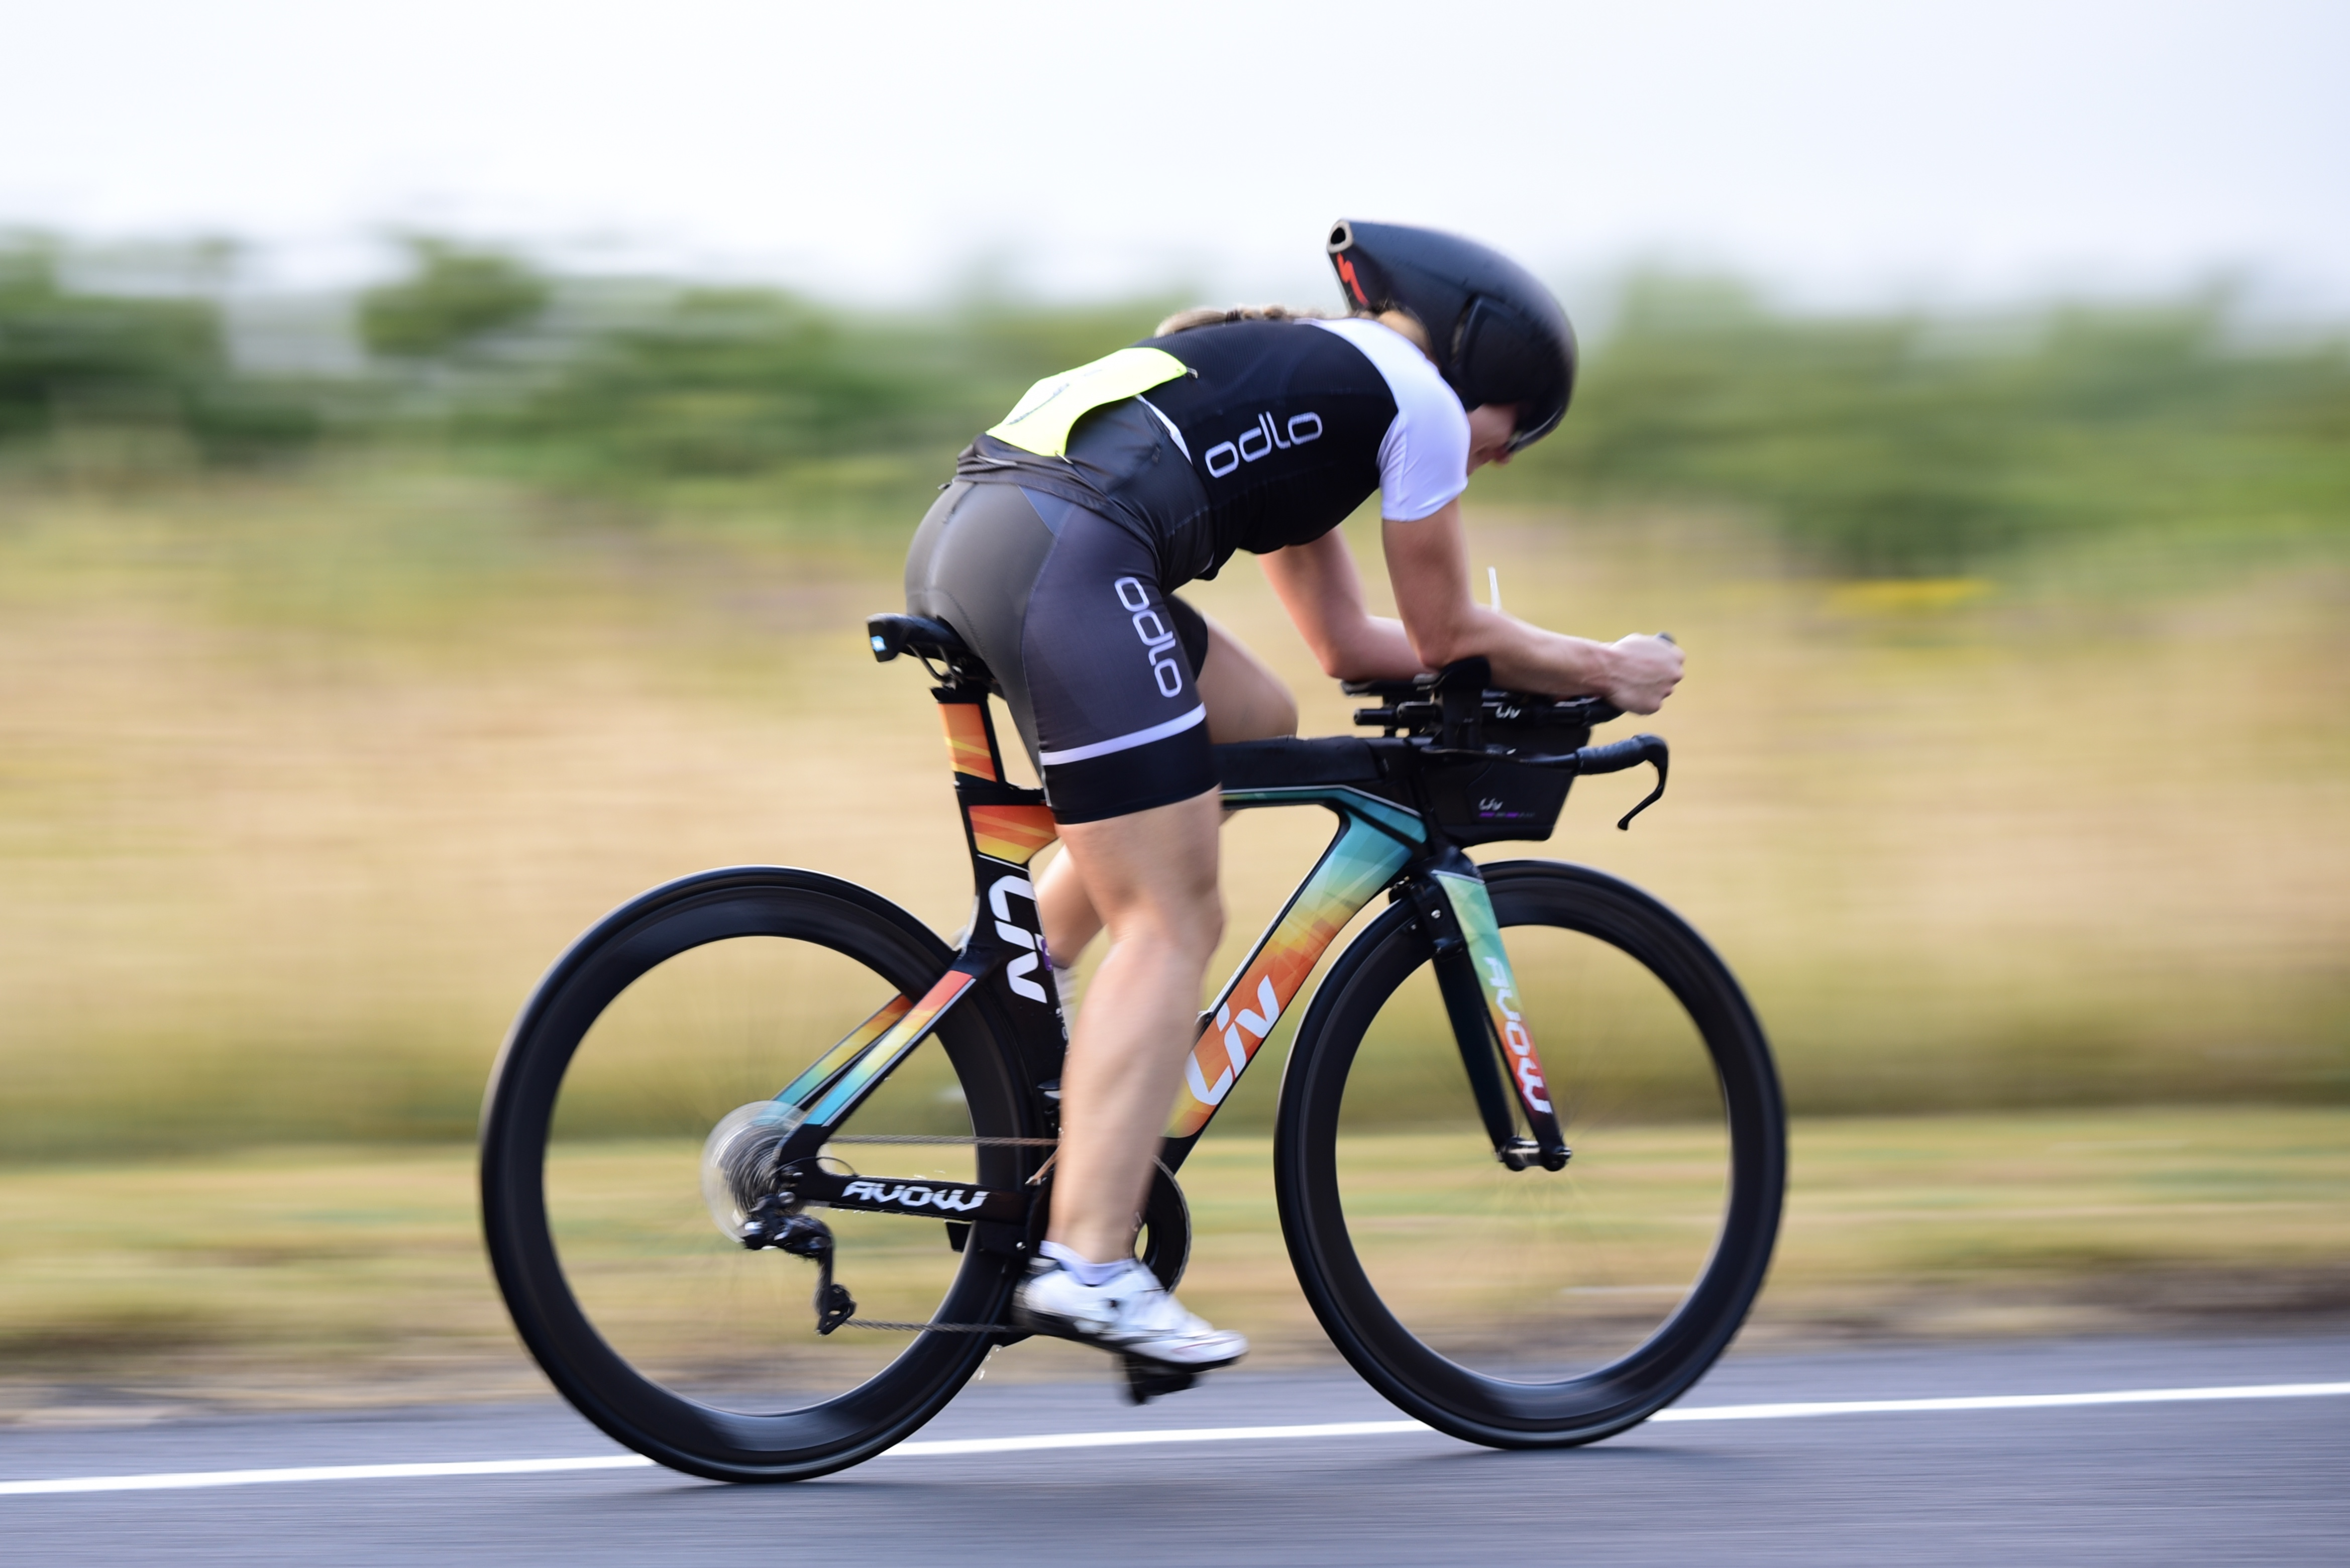 Cyclesense TT League